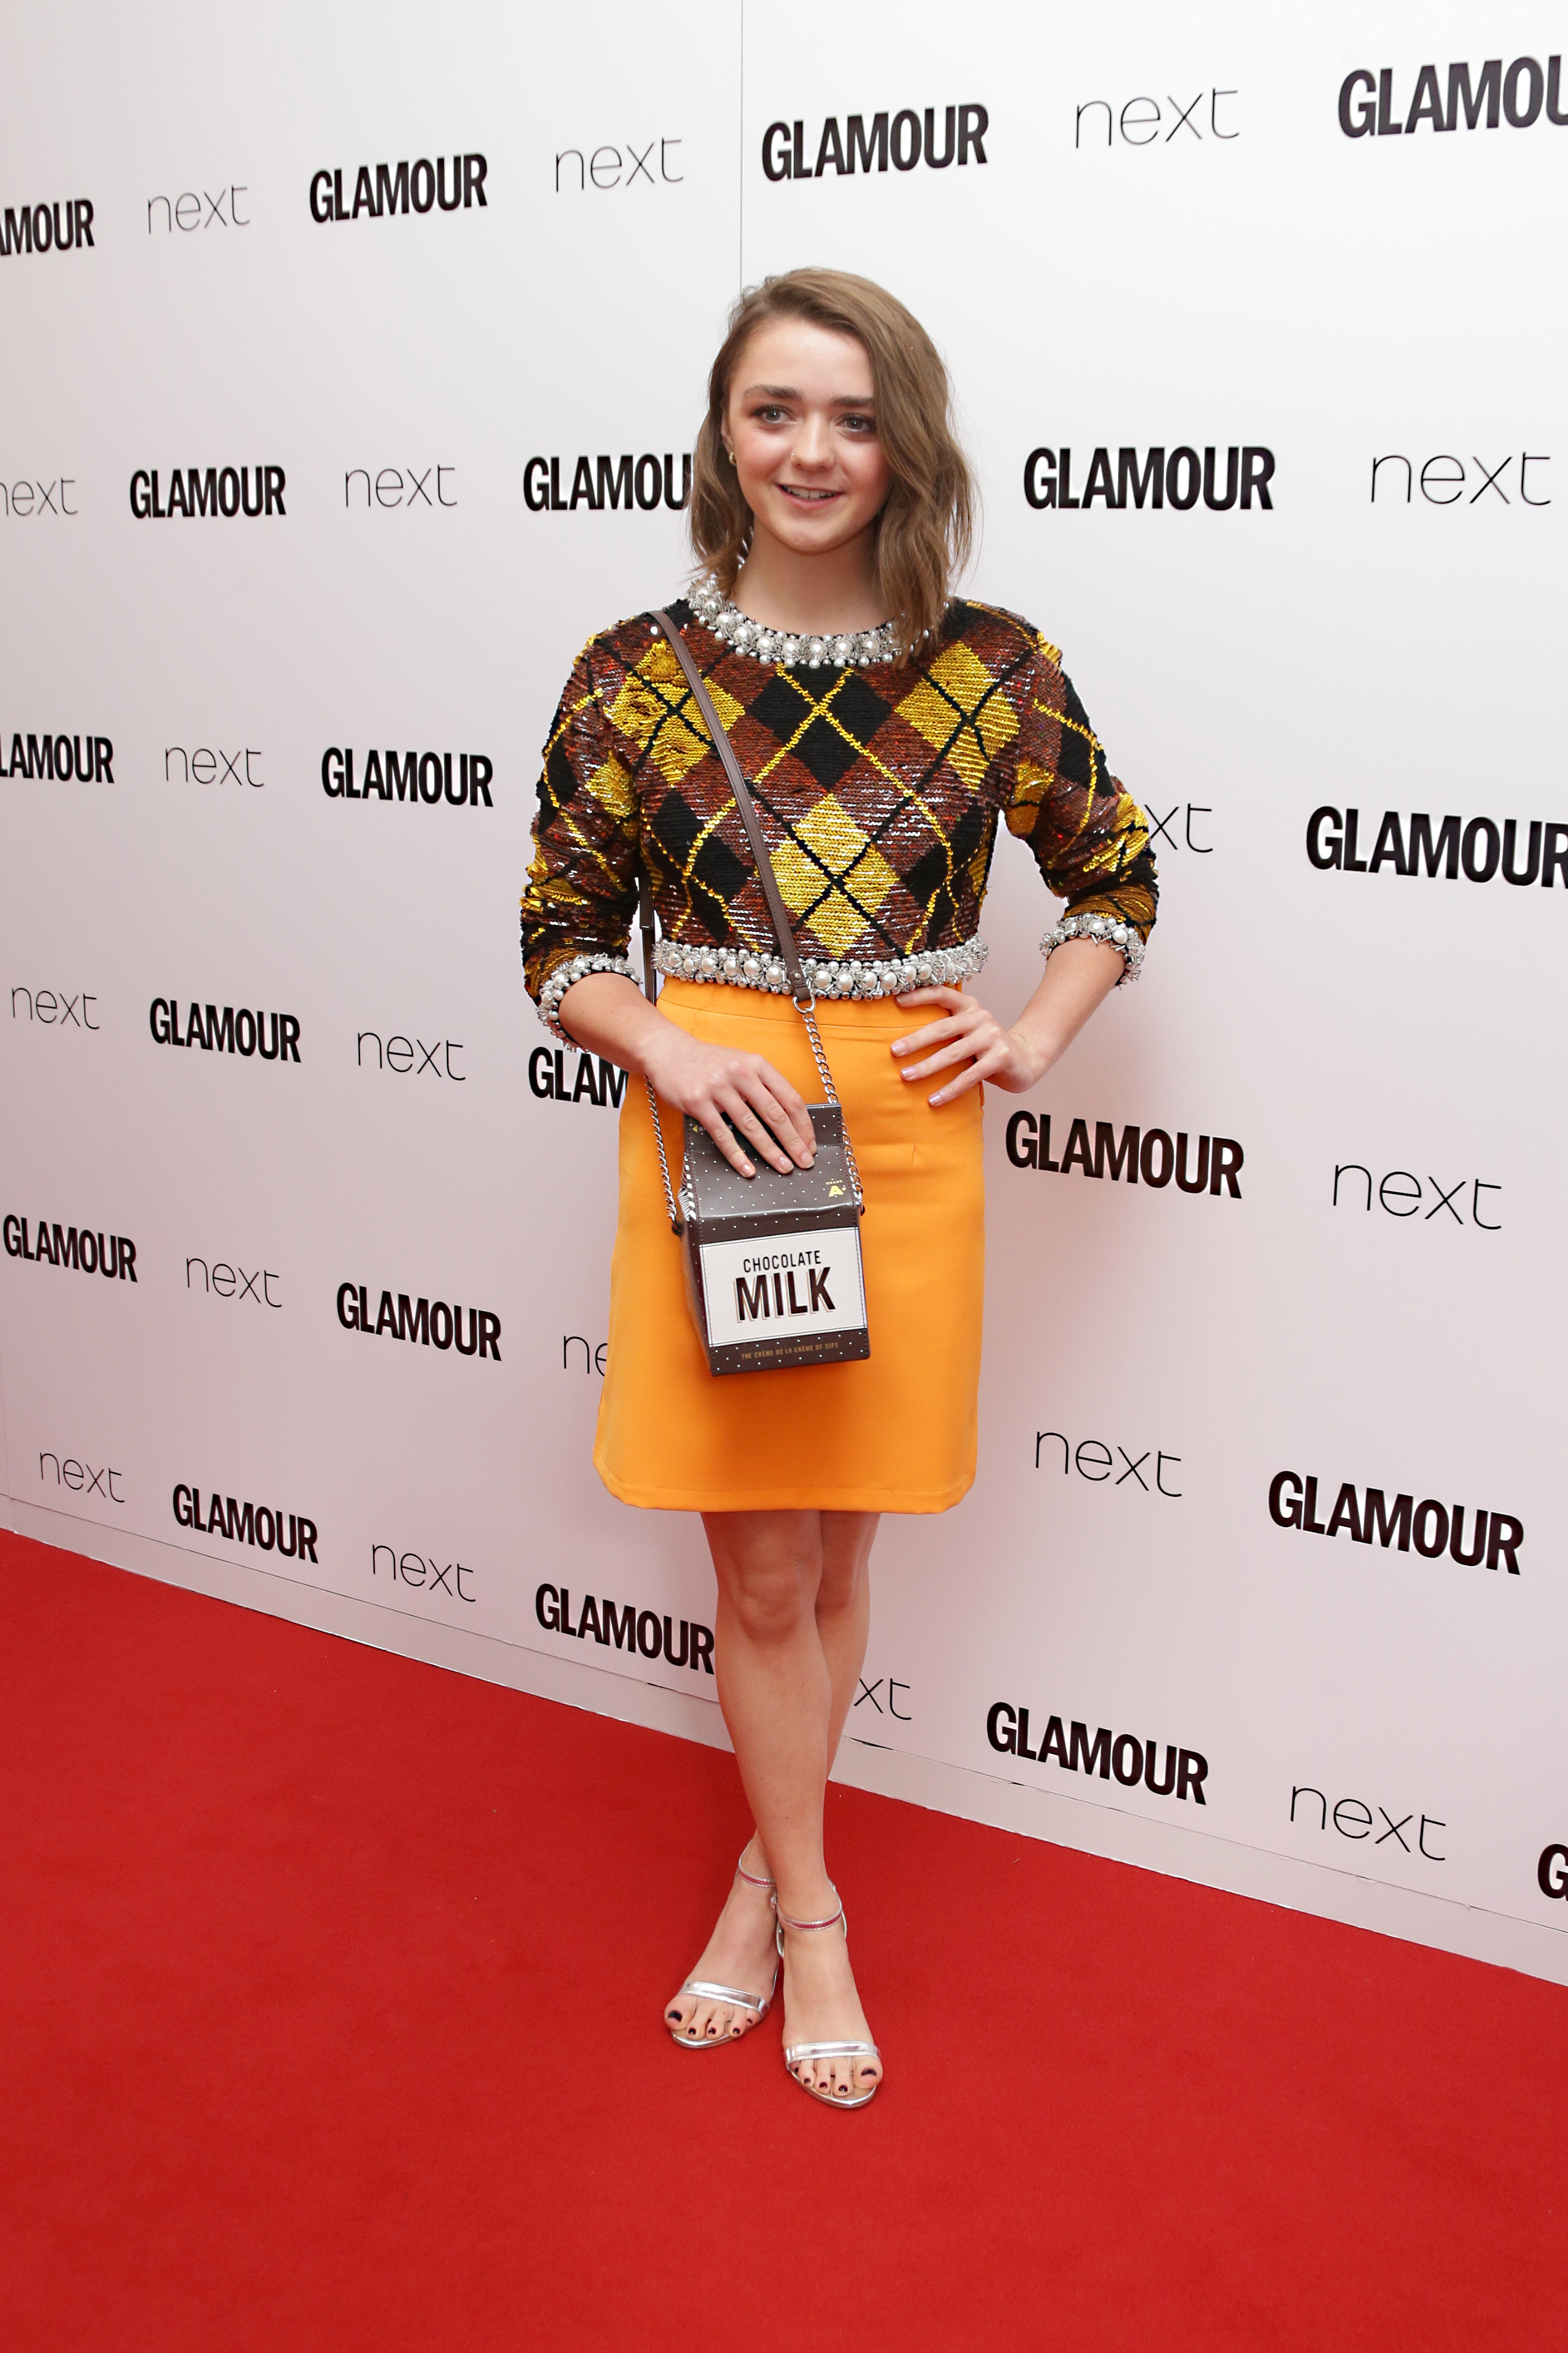 <div class='meta'><div class='origin-logo' data-origin='AP'></div><span class='caption-text' data-credit='Joel Ryan/Invision/AP'>Maisie Williams poses for photographers upon arrival at the Glamour Women Of The Year Awards in London, Tuesday, 2 June, 2015. (Photo by Joel Ryan/Invision/AP)</span></div>